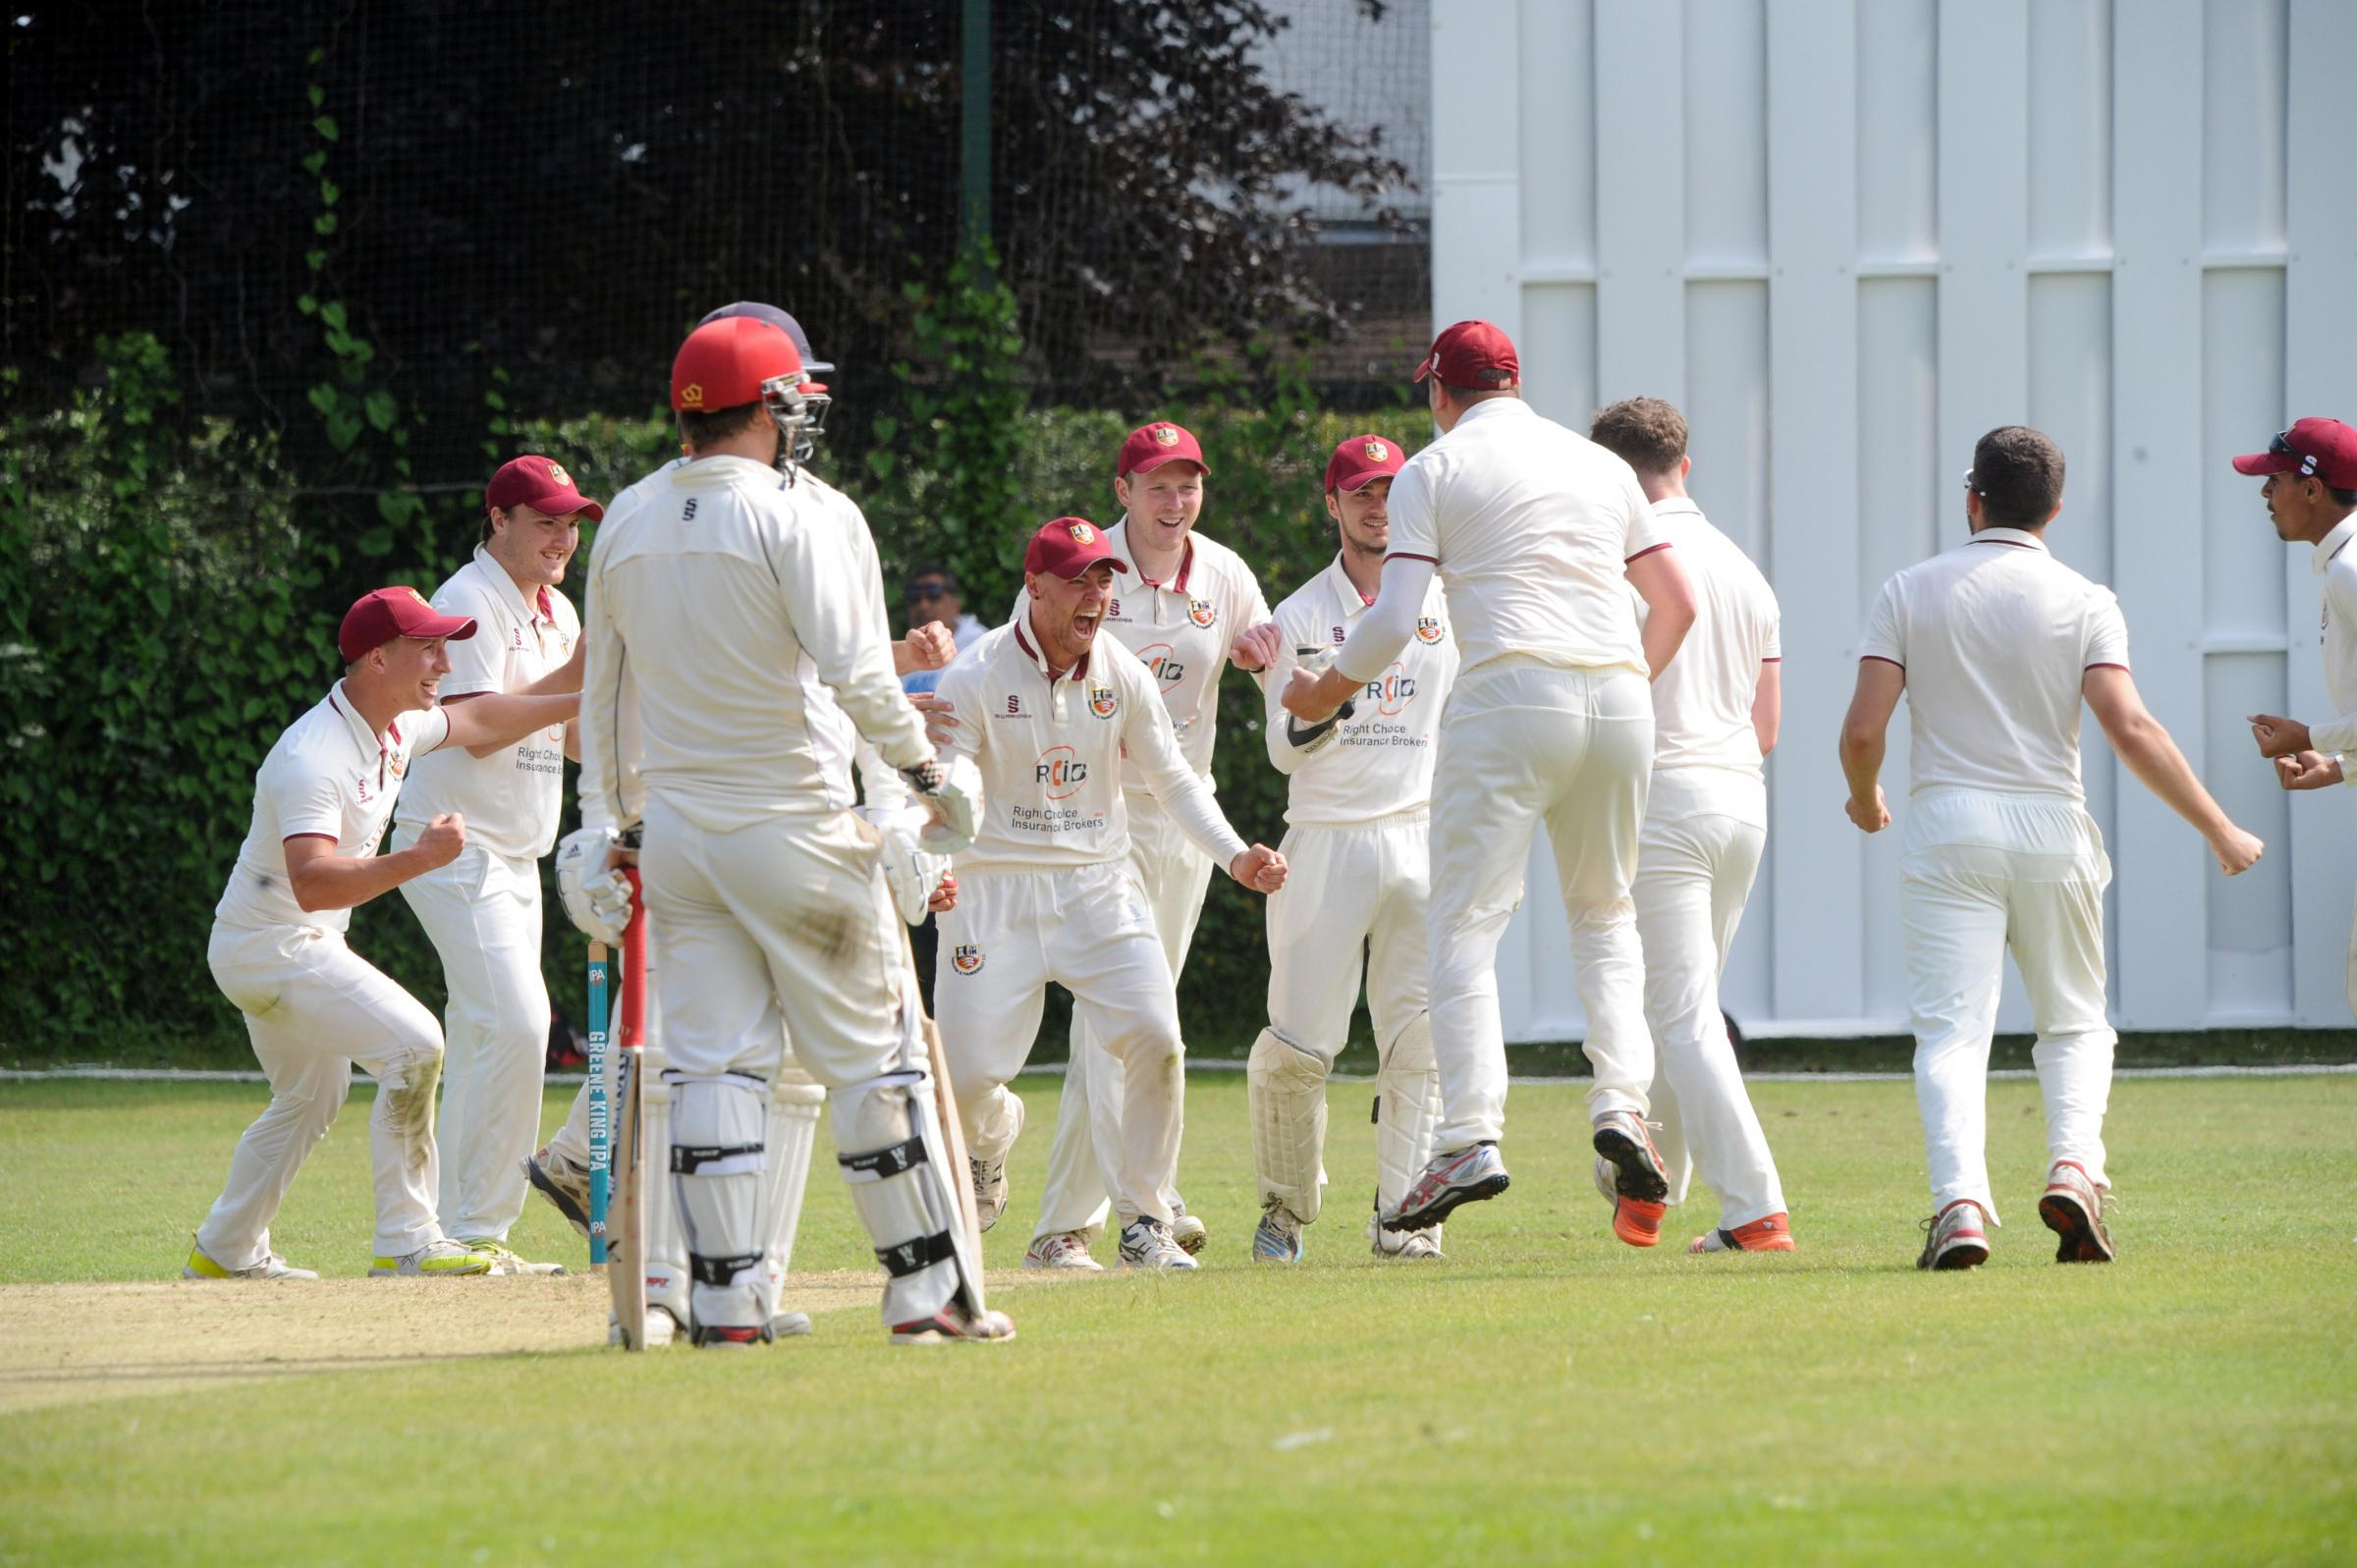 Scenes - Hadleigh & Thundersley celebrate a wicket in their recent win against Billericay Picture: JON WAGSTAFF